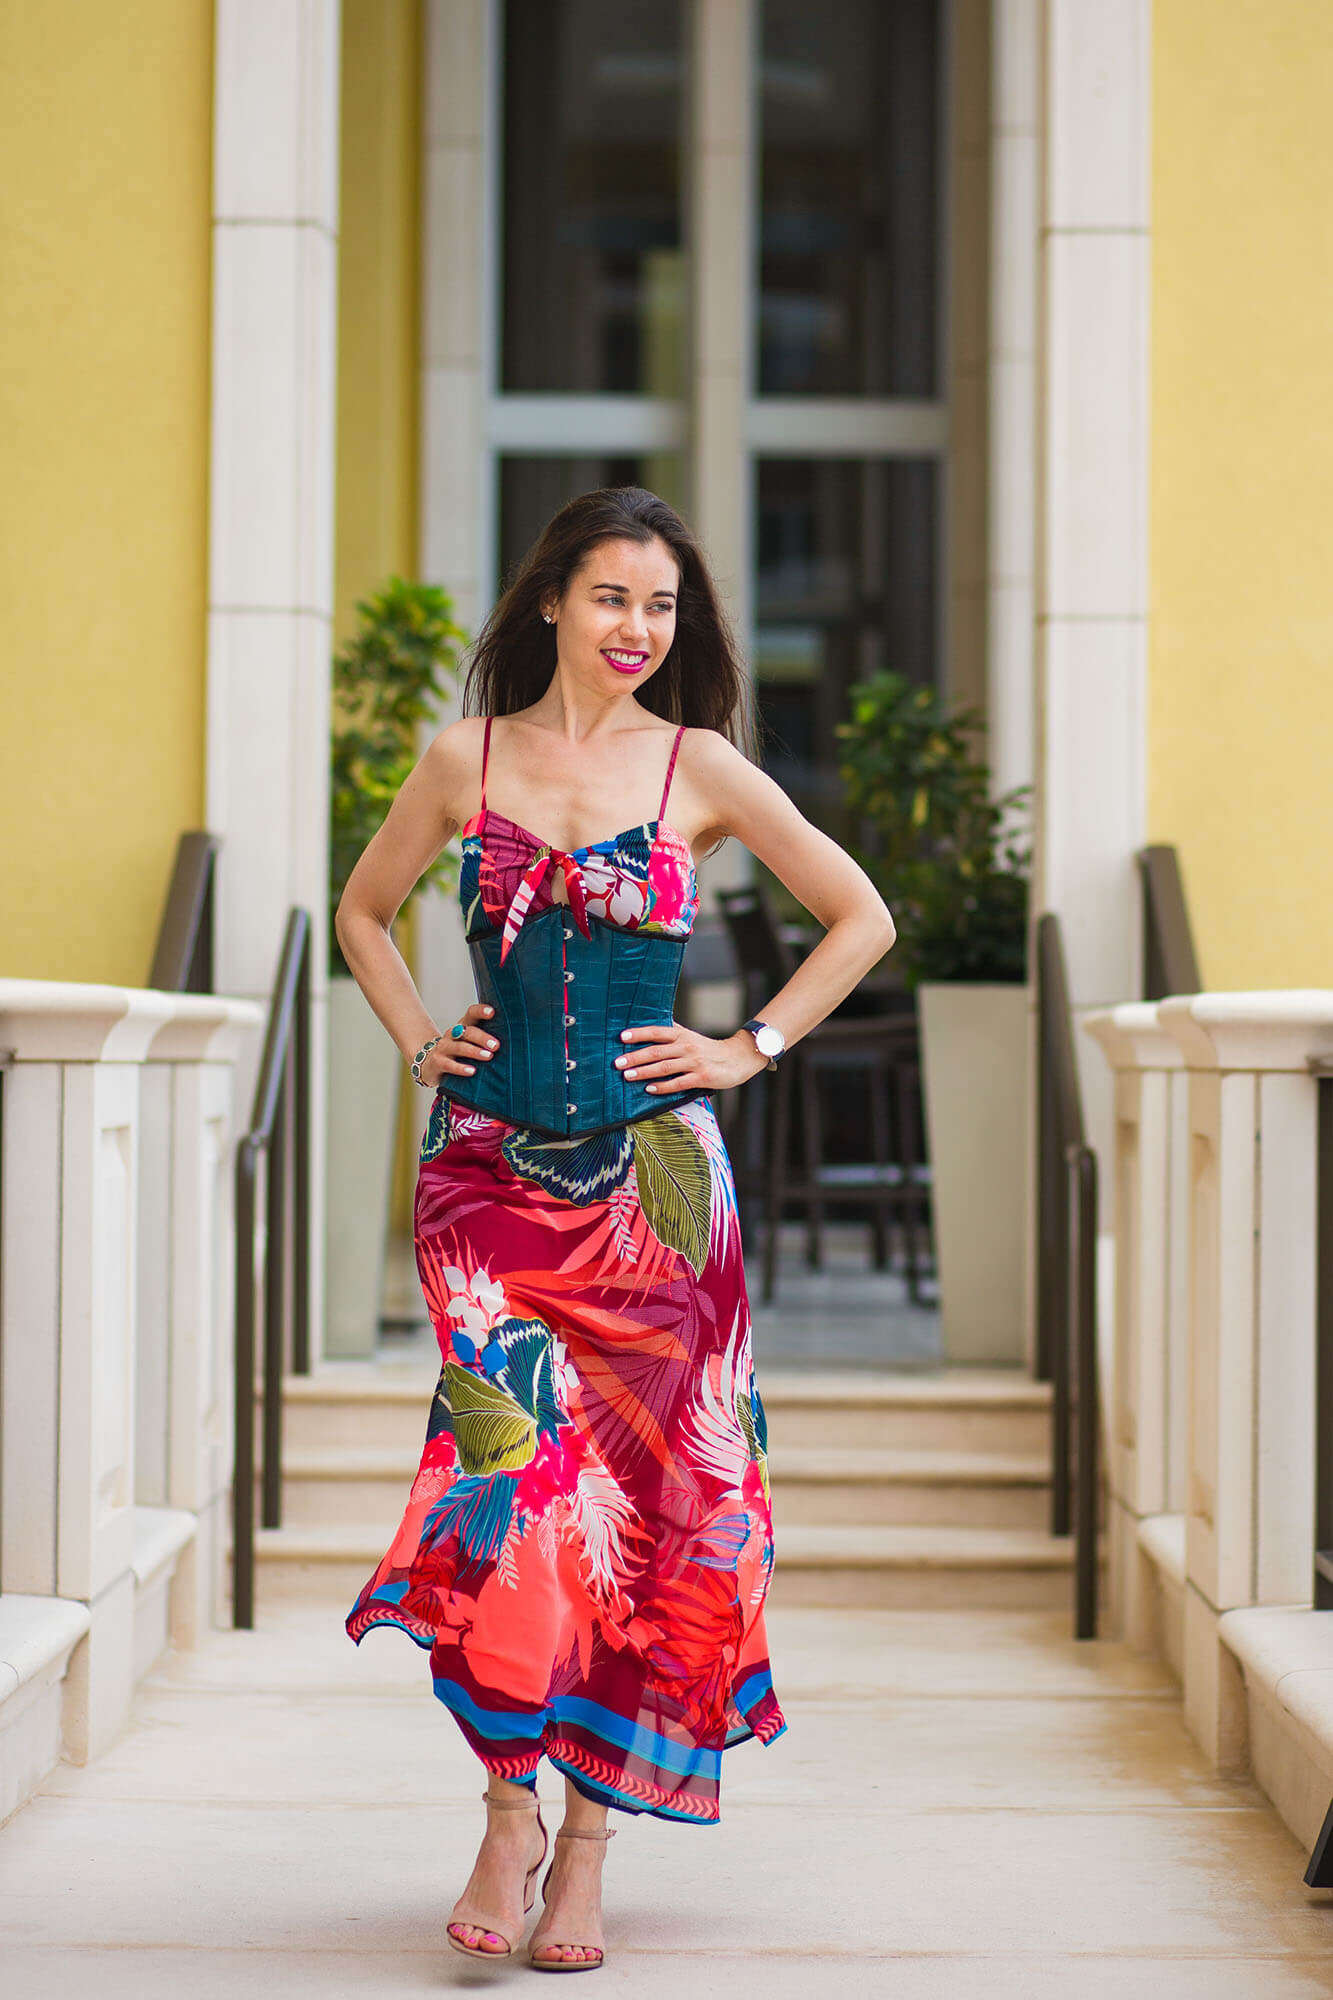 Stella in Teal Corset and Red Tropical Dress with Hands on Her Hips